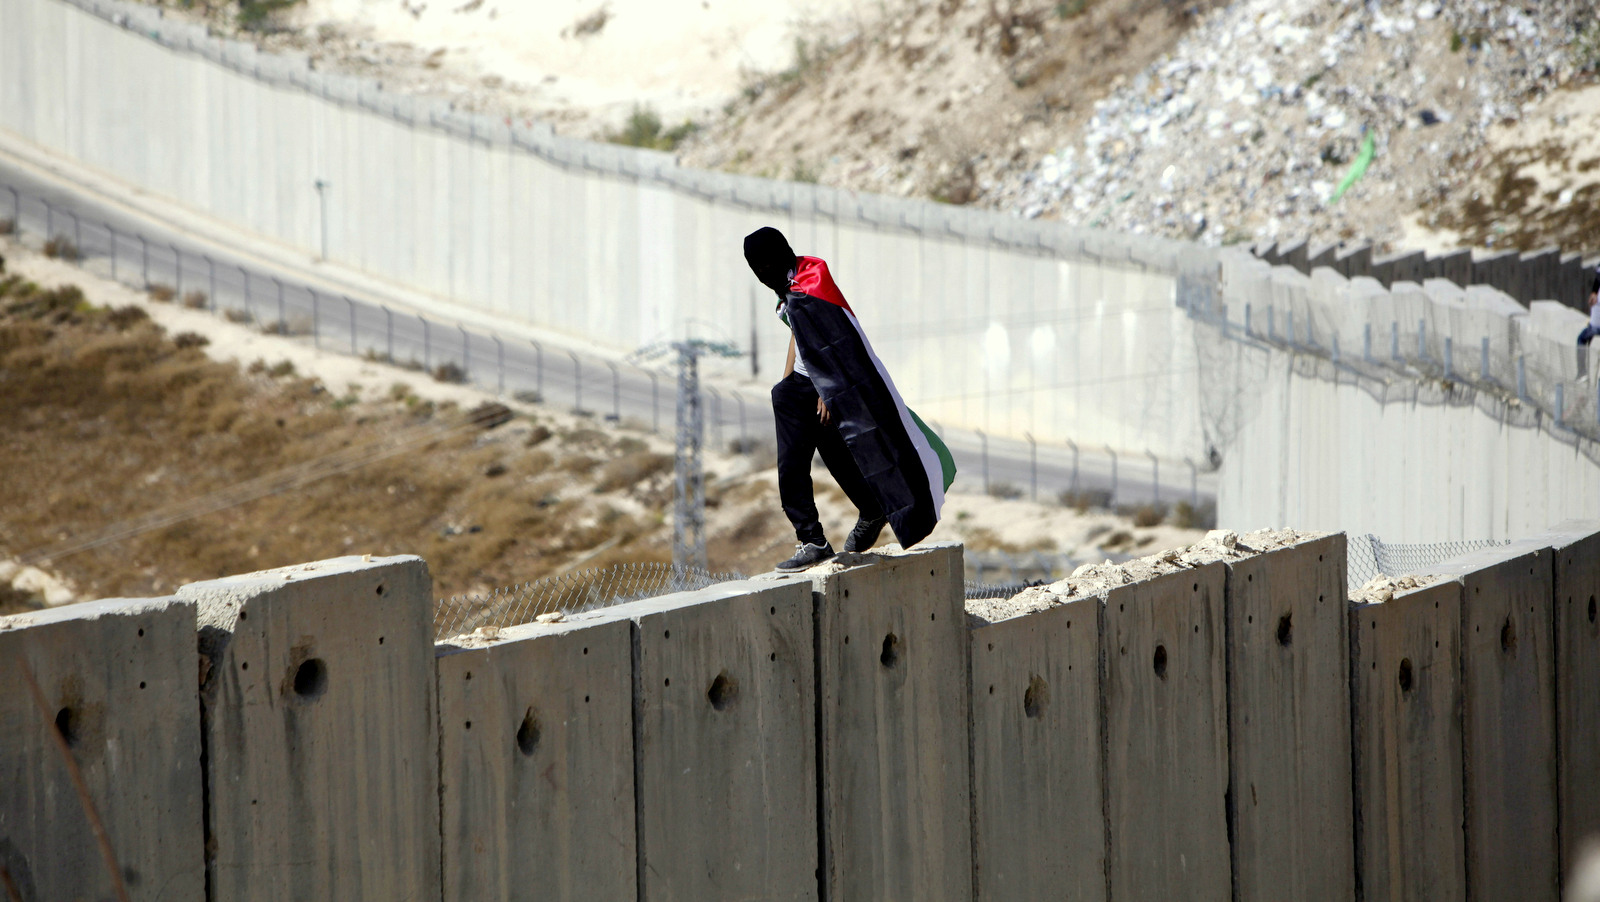 A student wrapped in a Palestinian flag walks over Israel's apartheid wall between the West Bank and Israel in Abu Dis during a protest Monday, Nov. 2, 2015. (AP Photo/Mahmoud Illean)